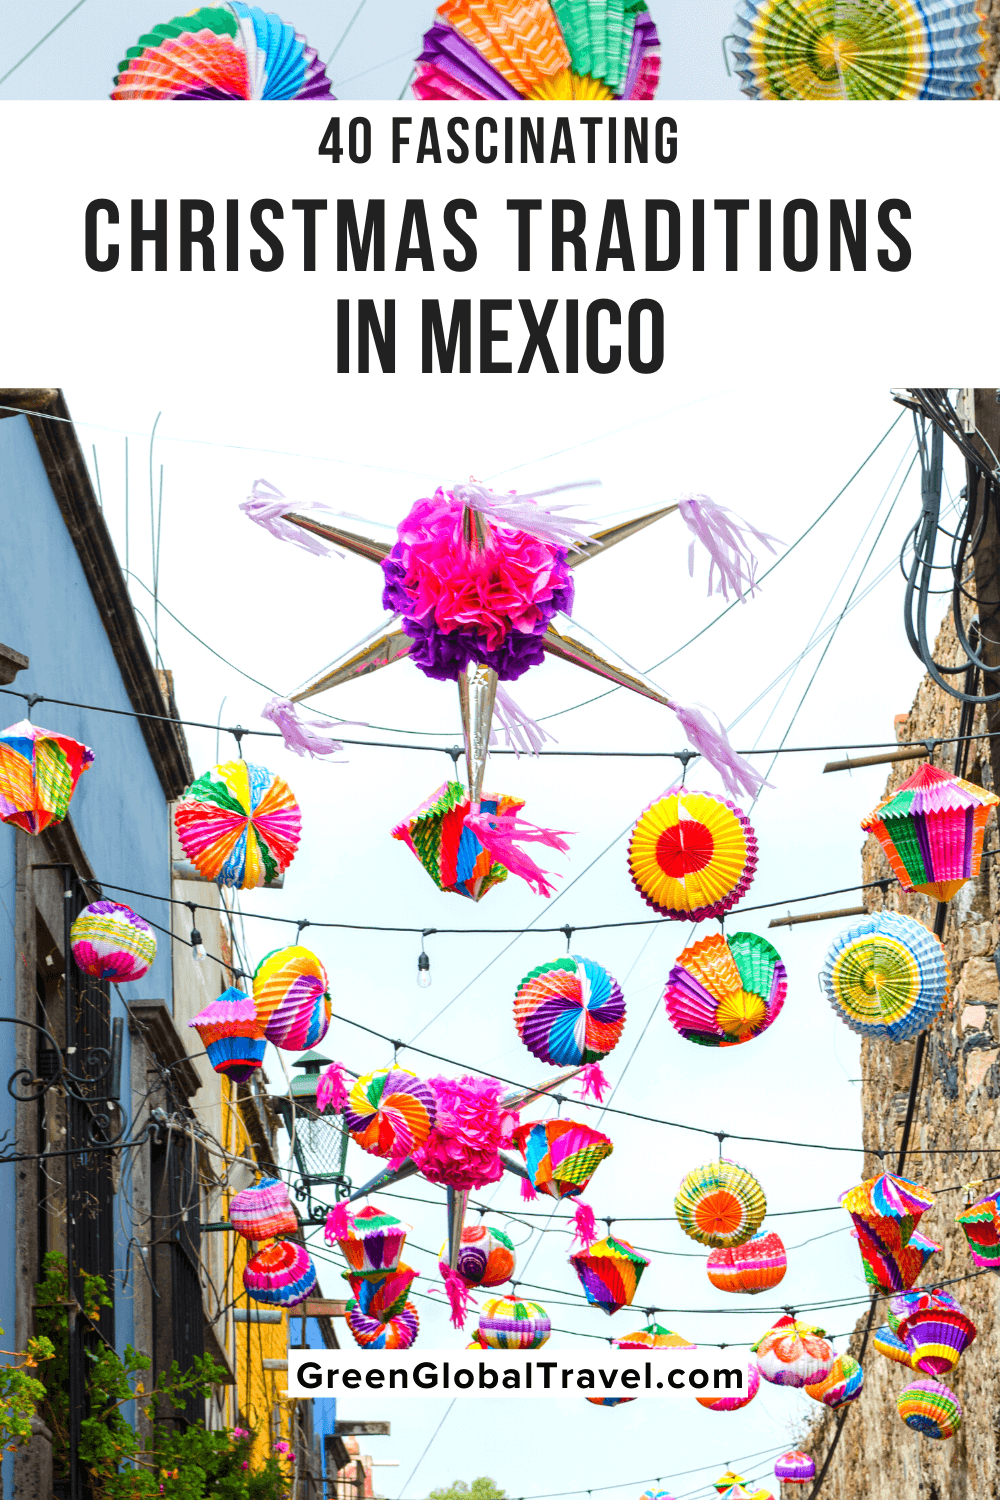 40 Fascinating Christmas Traditions in Mexico including Christmas Food in Mexico, Mexican Christmas Decorations, Mexican Christmas Trees, Santa in Mexico, and Christmas Songs in Mexico | mexican christmas | christmas mexico | mexico at christmas | mexican christmas traditions | mexico christmas traditions | traditions in mexico for christmas | mexico traditions christmas | christmas mexican traditions | traditional mexican christmas | mexico christmas decorations | mexican christmas trees